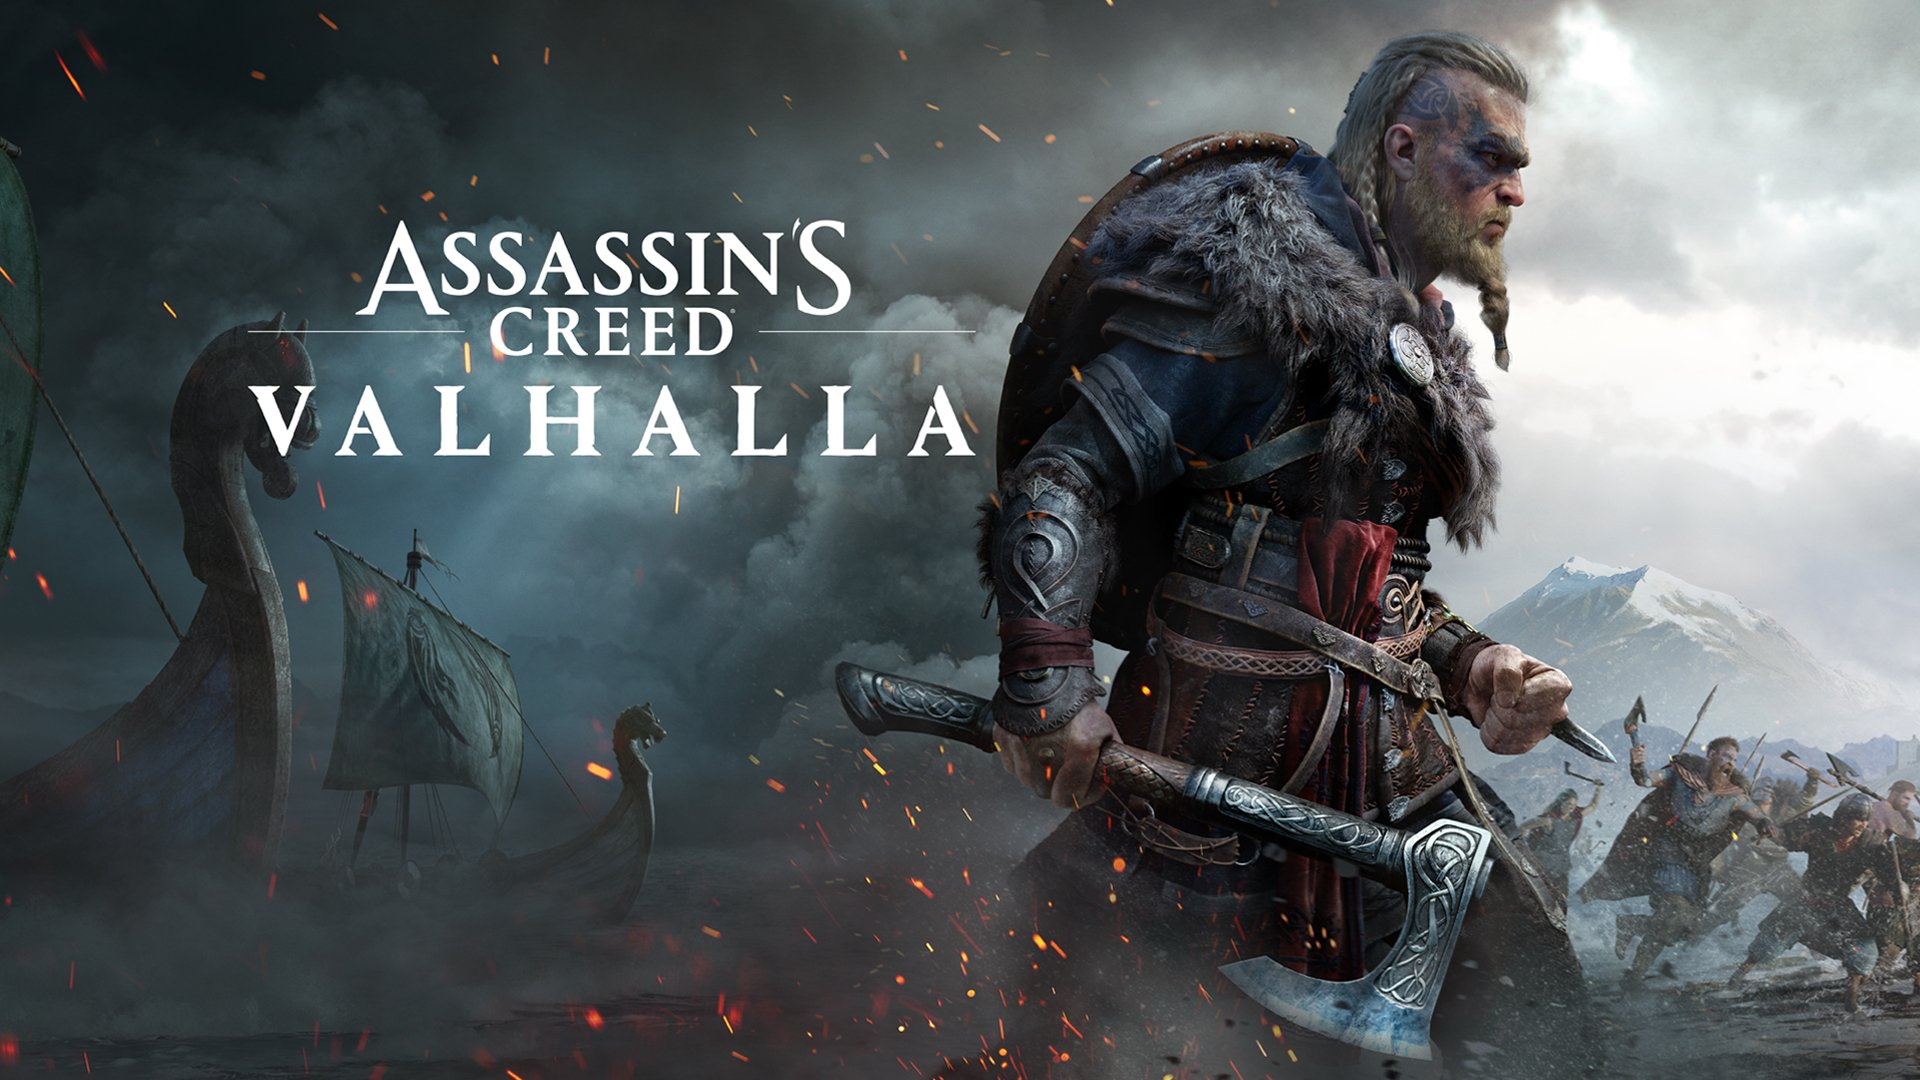 Analyse du trailer d'Assassin's Creed Valhalla : du choix, du combat et du RPG